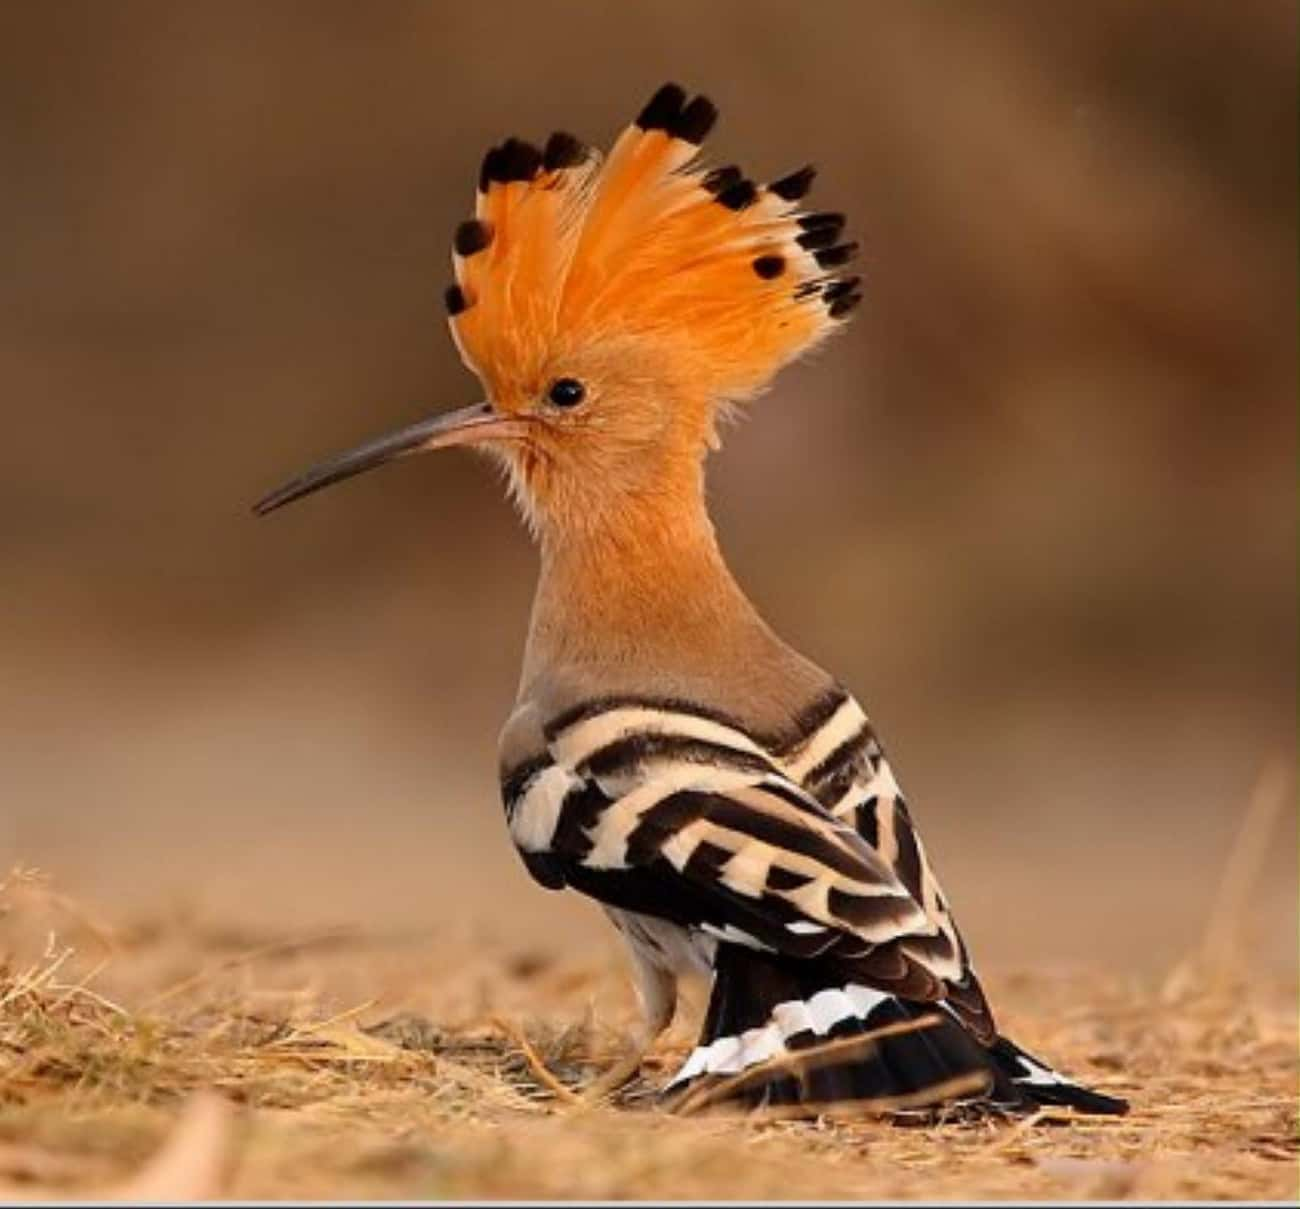 Noble Hoopoes is listed (or ranked) 3 on the list The Most Horrifying Defense Mechanisms of Adorable Animals